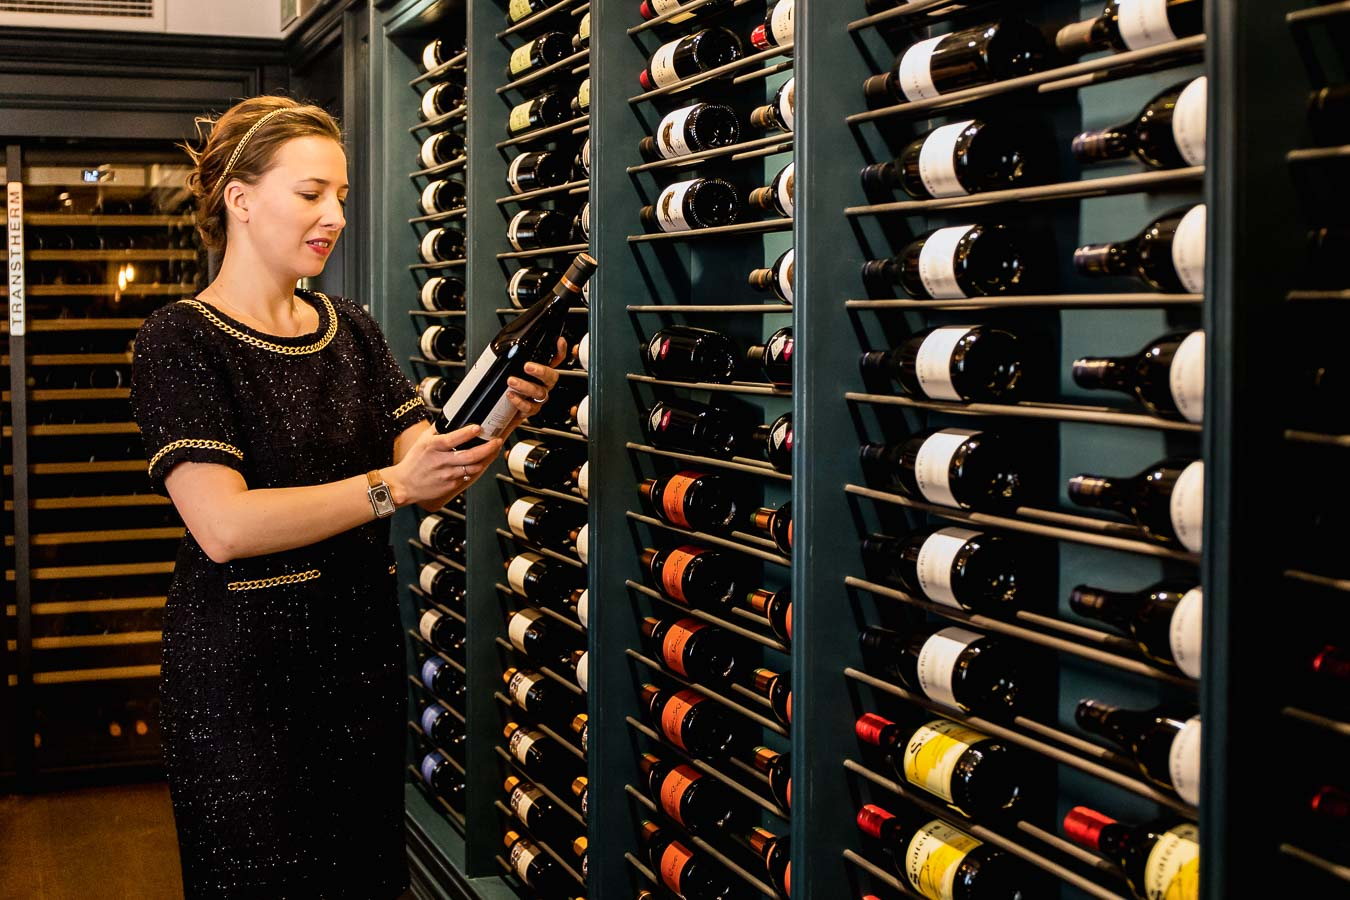 Lady in black and gold dress reading the wine label with a large wine rack along the whole wall in front of her. Margriet Crump, Sommelier